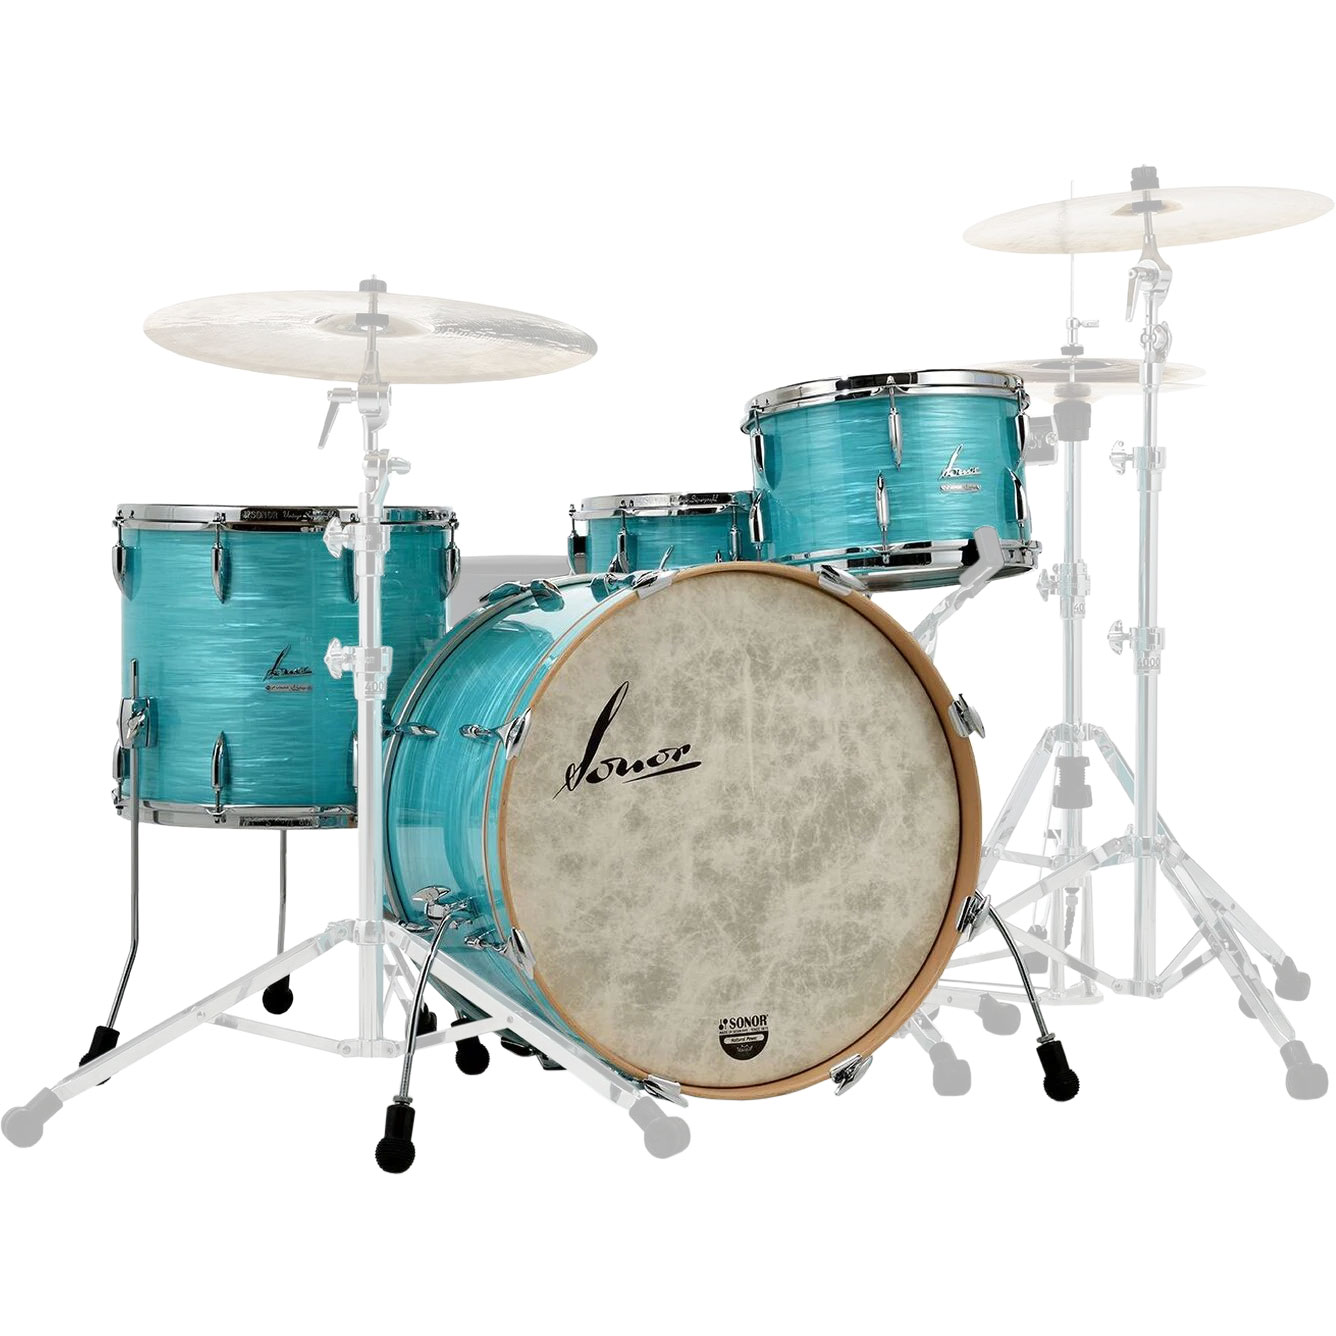 "Sonor Vintage 3-Piece Drum Set Shell Pack, No Tom Mount (22"" Bass, 13/16"" Toms)"